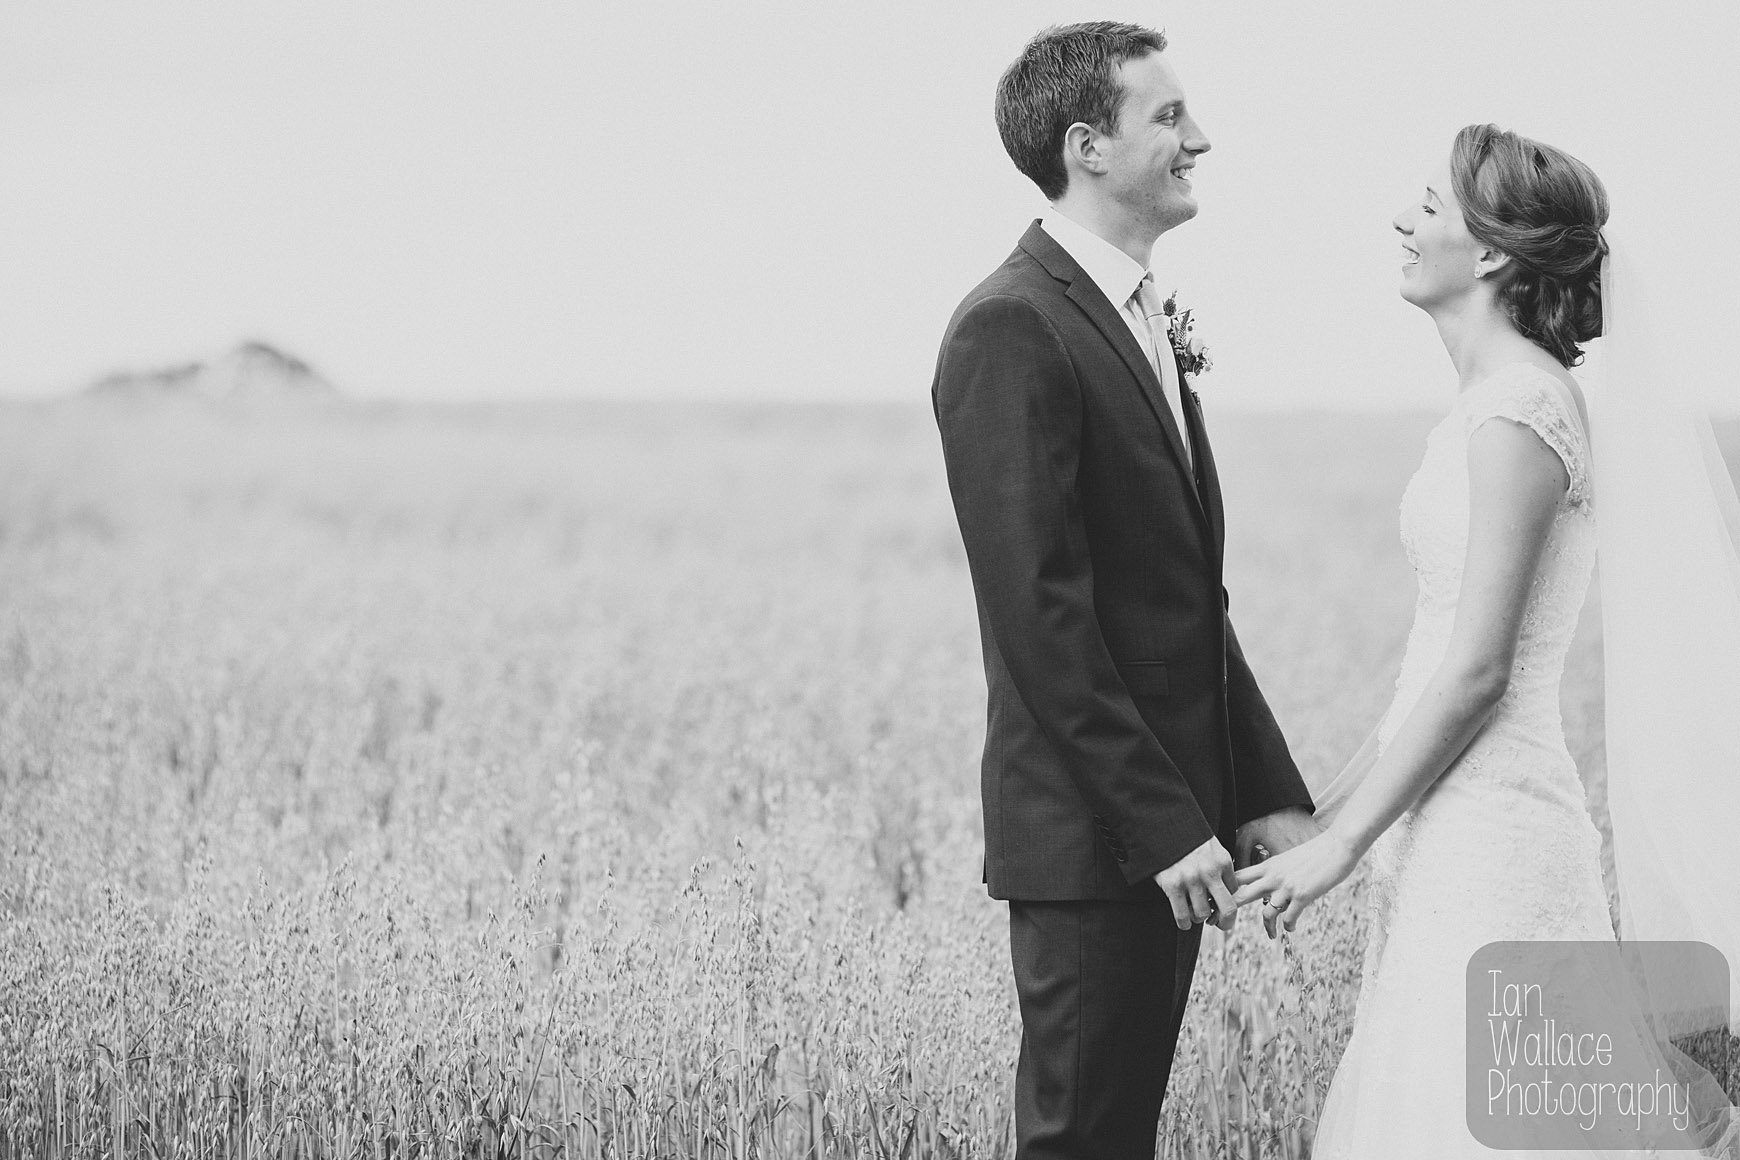 Reportage fine art photo of couple laughing away from wedding party.